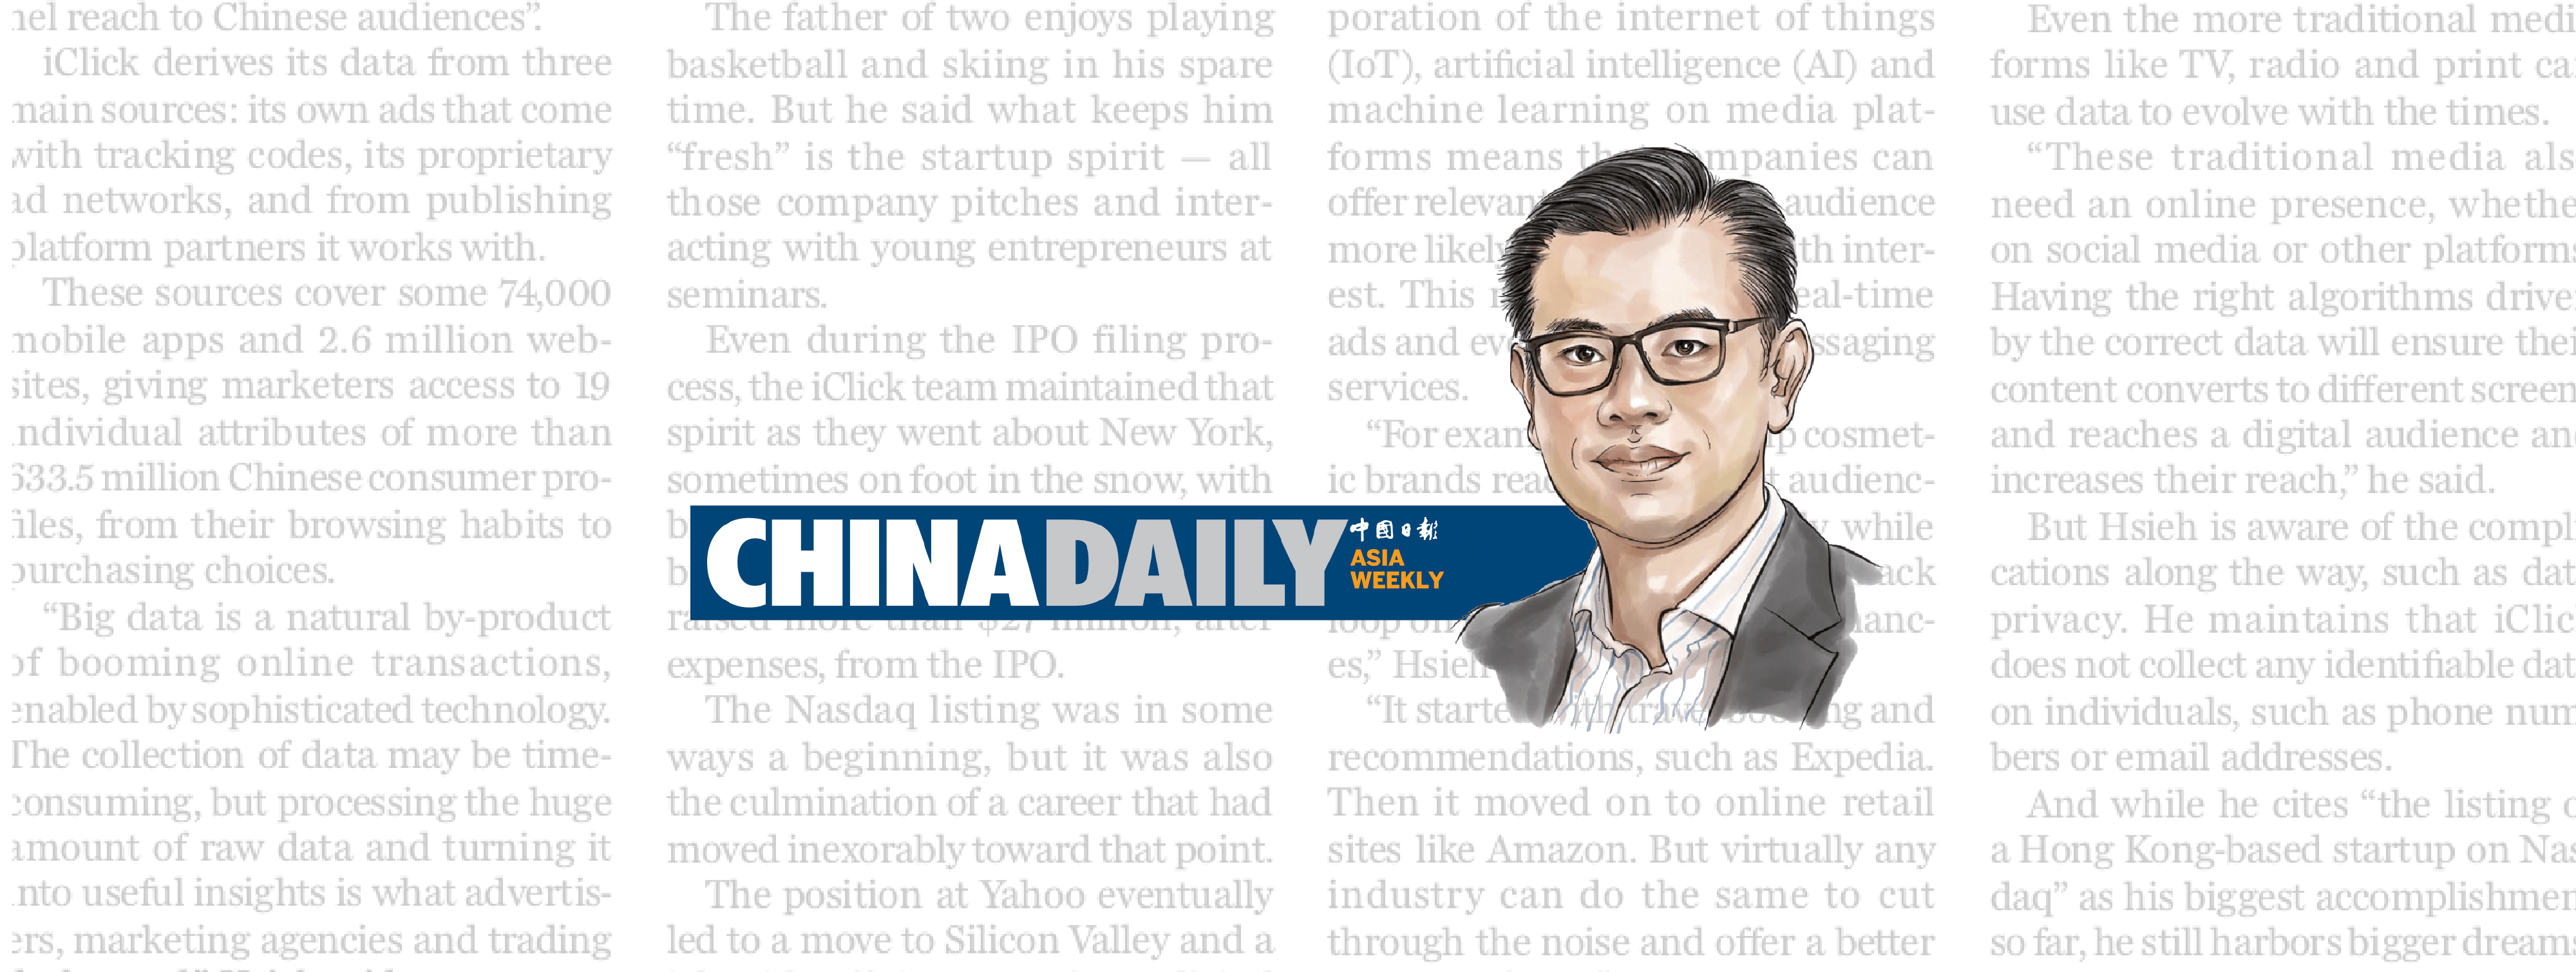 Sammy Hsieh @ China Daily Asia Weekly